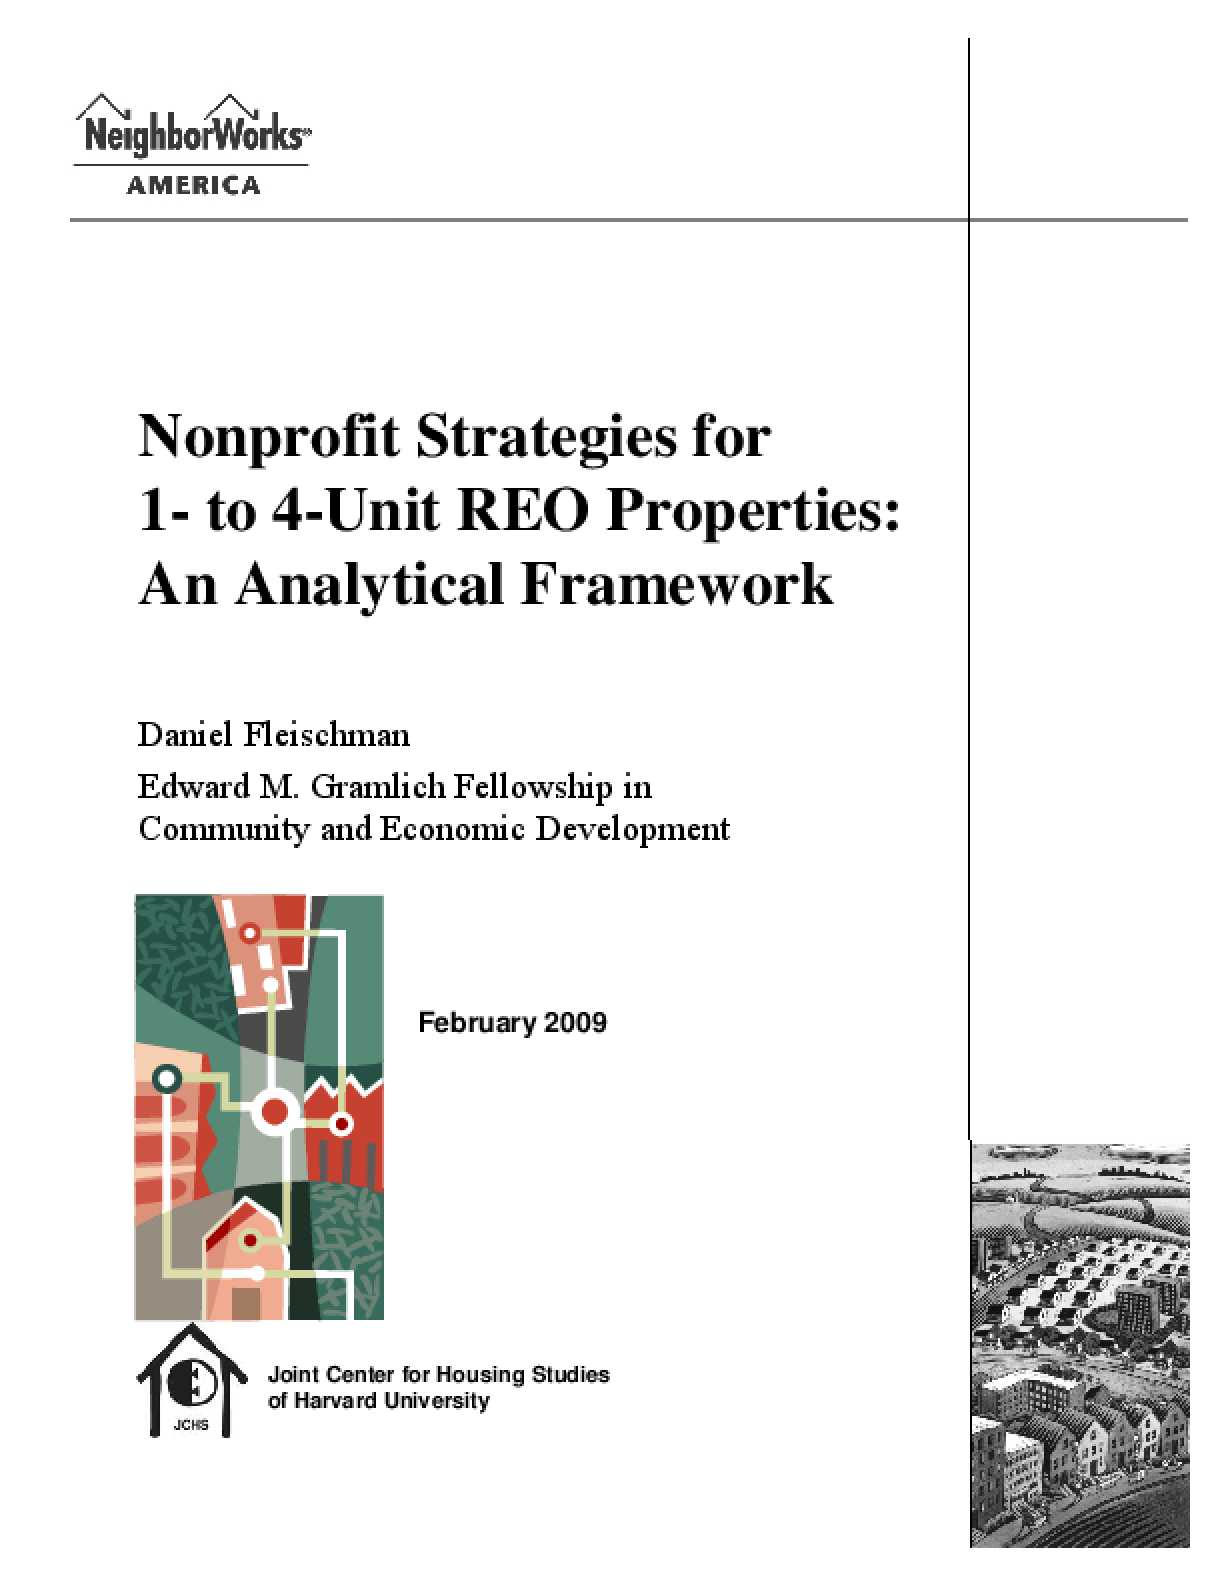 Nonprofit Strategies for 1- to 4-Unit REO Properties: An Analytical Framework